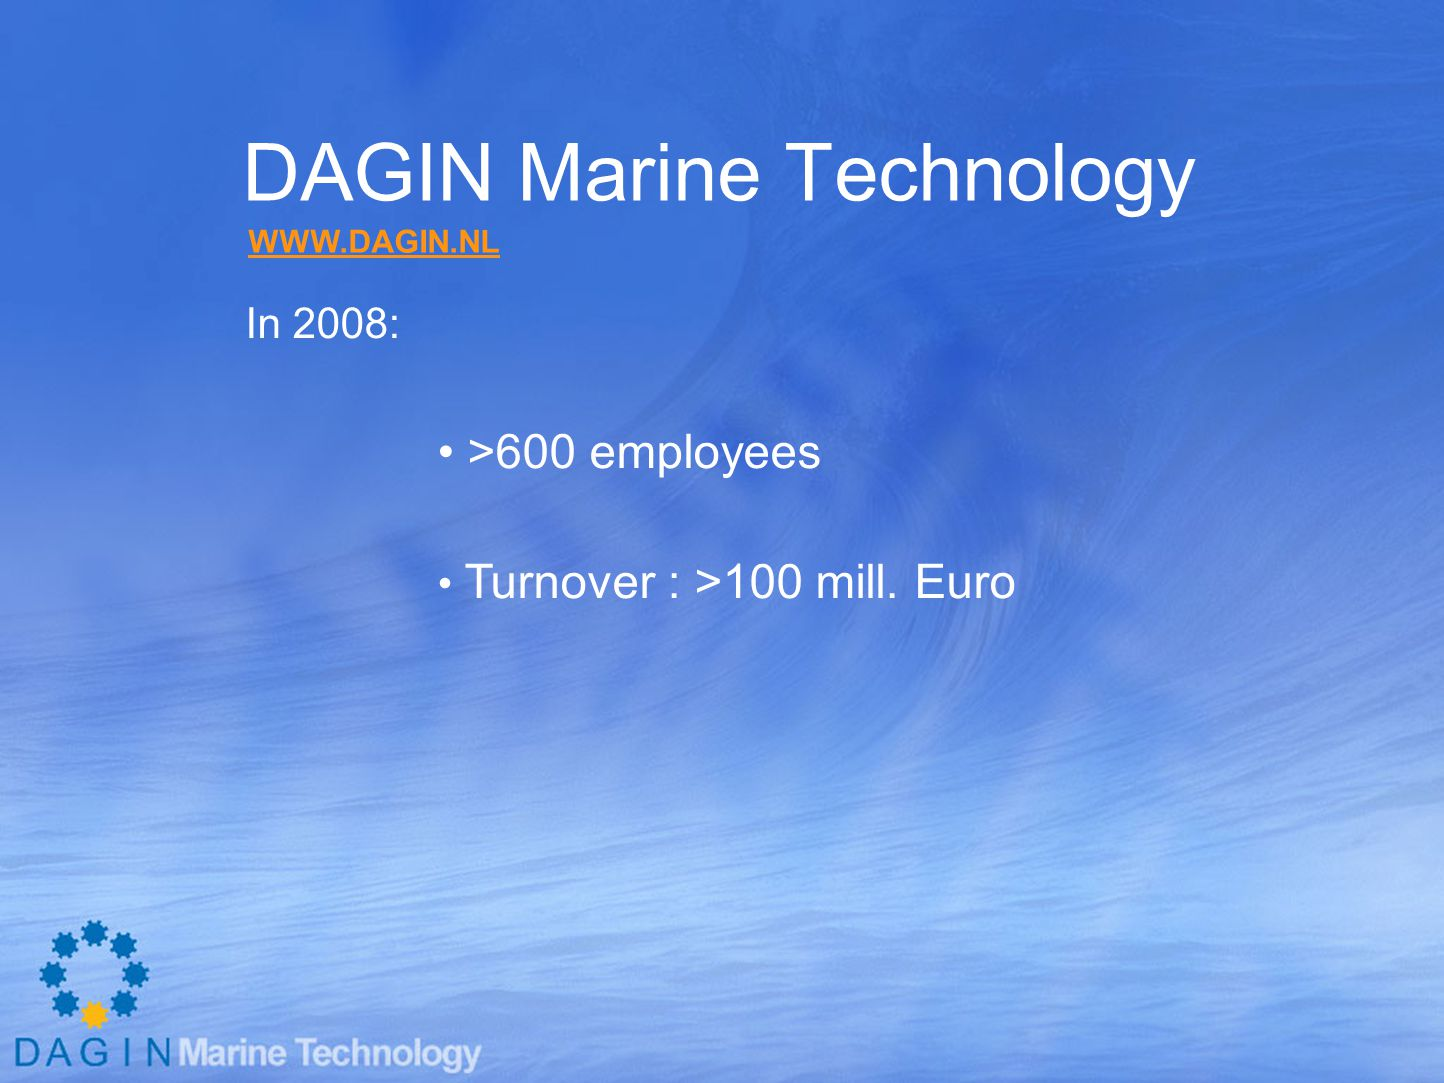 DAGIN Marine Technology In 2008: >600 employees Turnover : >100 mill. Euro WWW.DAGIN.NL